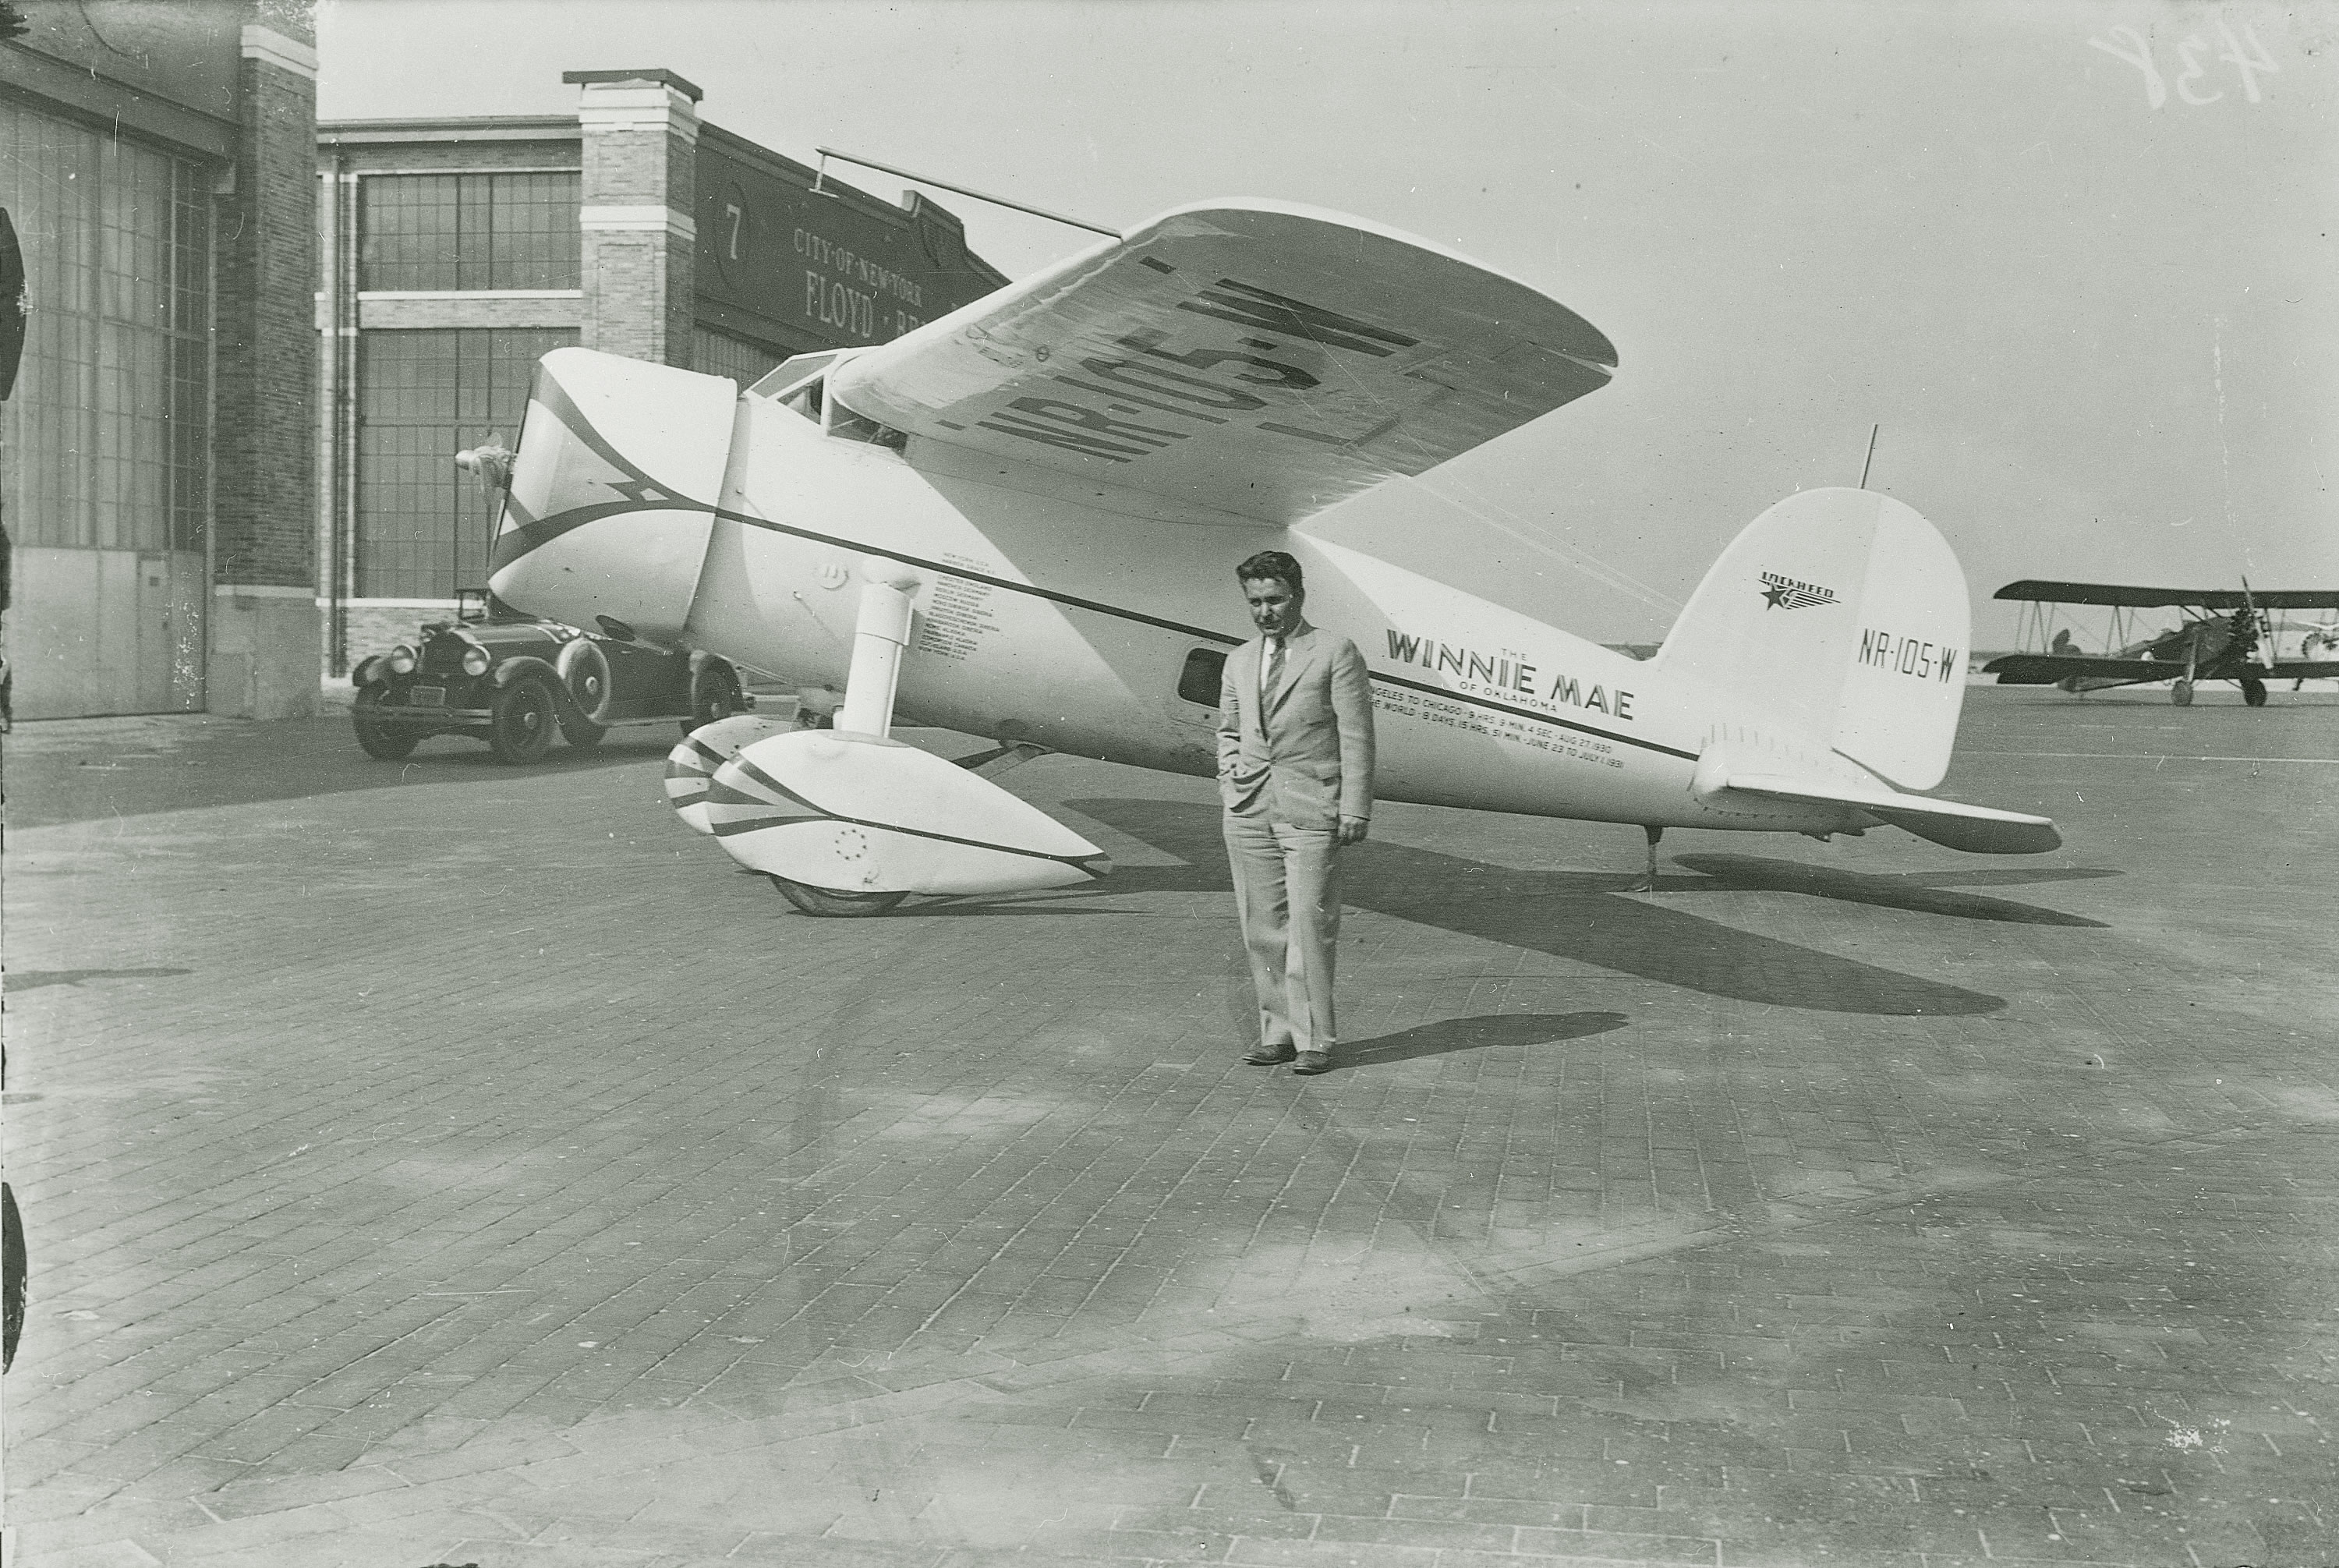 Wiley Post and Winnie Mae